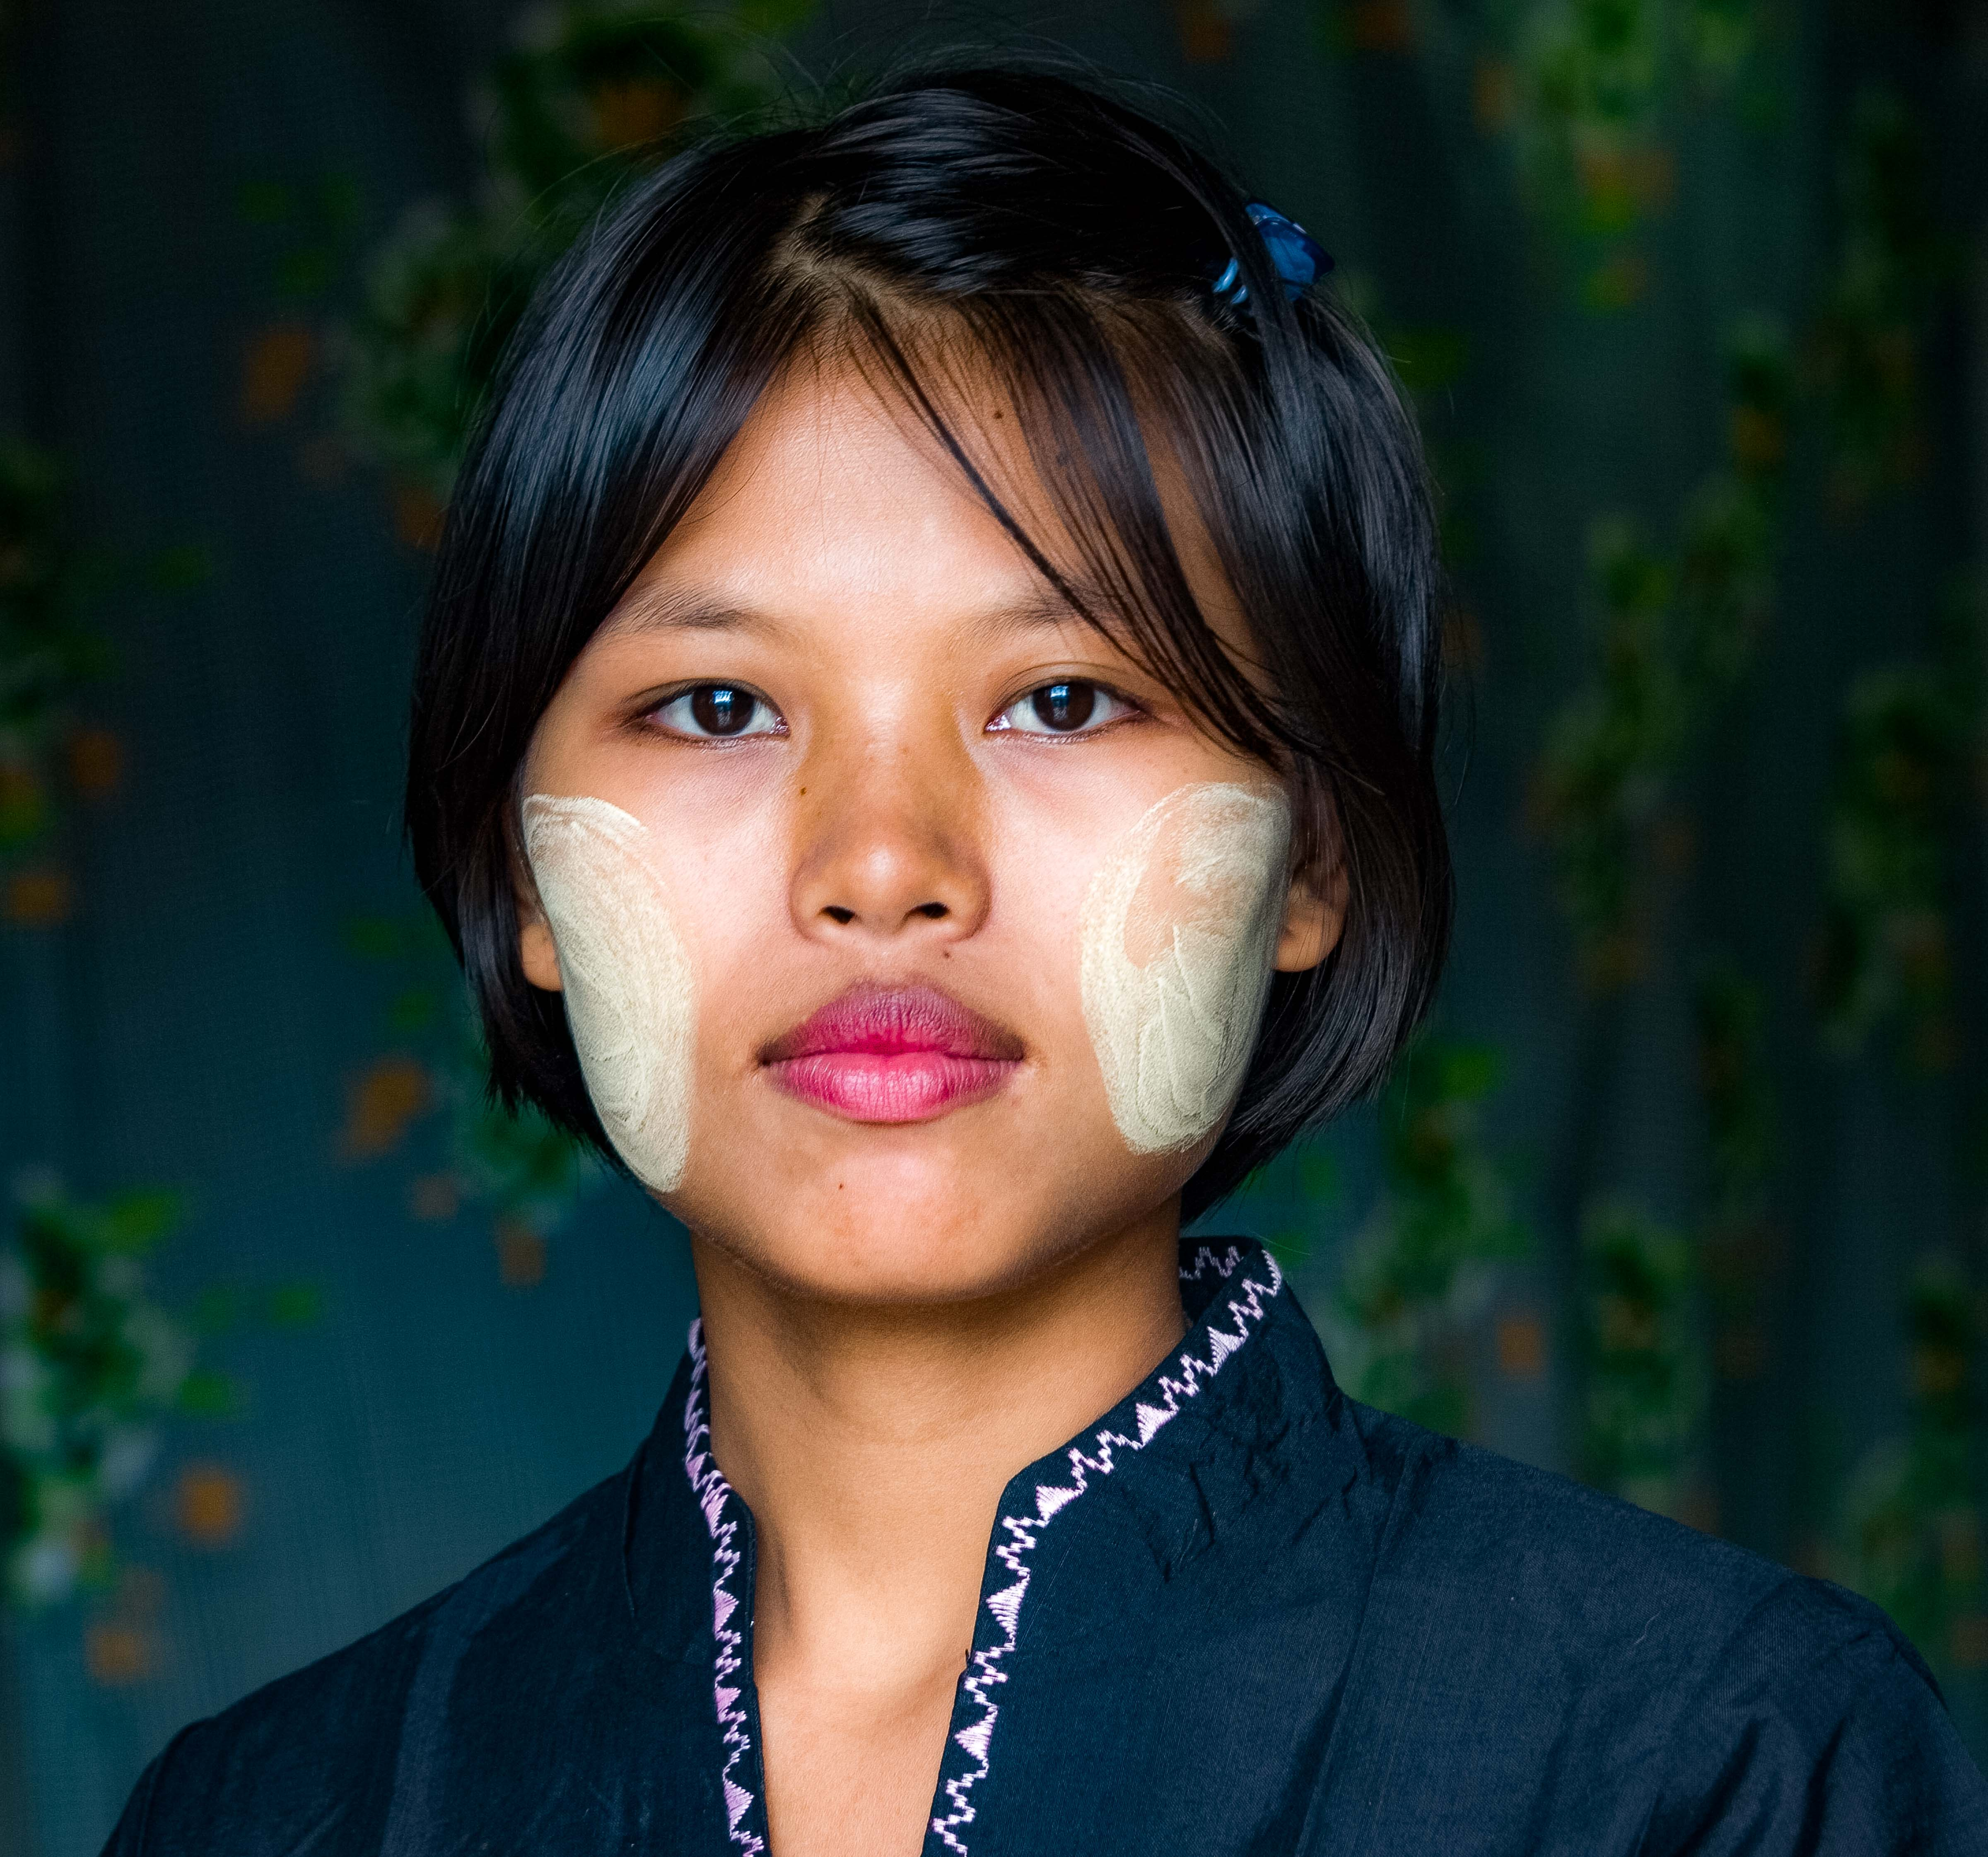 Myanmar, Tanintharyi Prov, Burmese Beauty In Traditional Clothing, 2008, IMG 2741